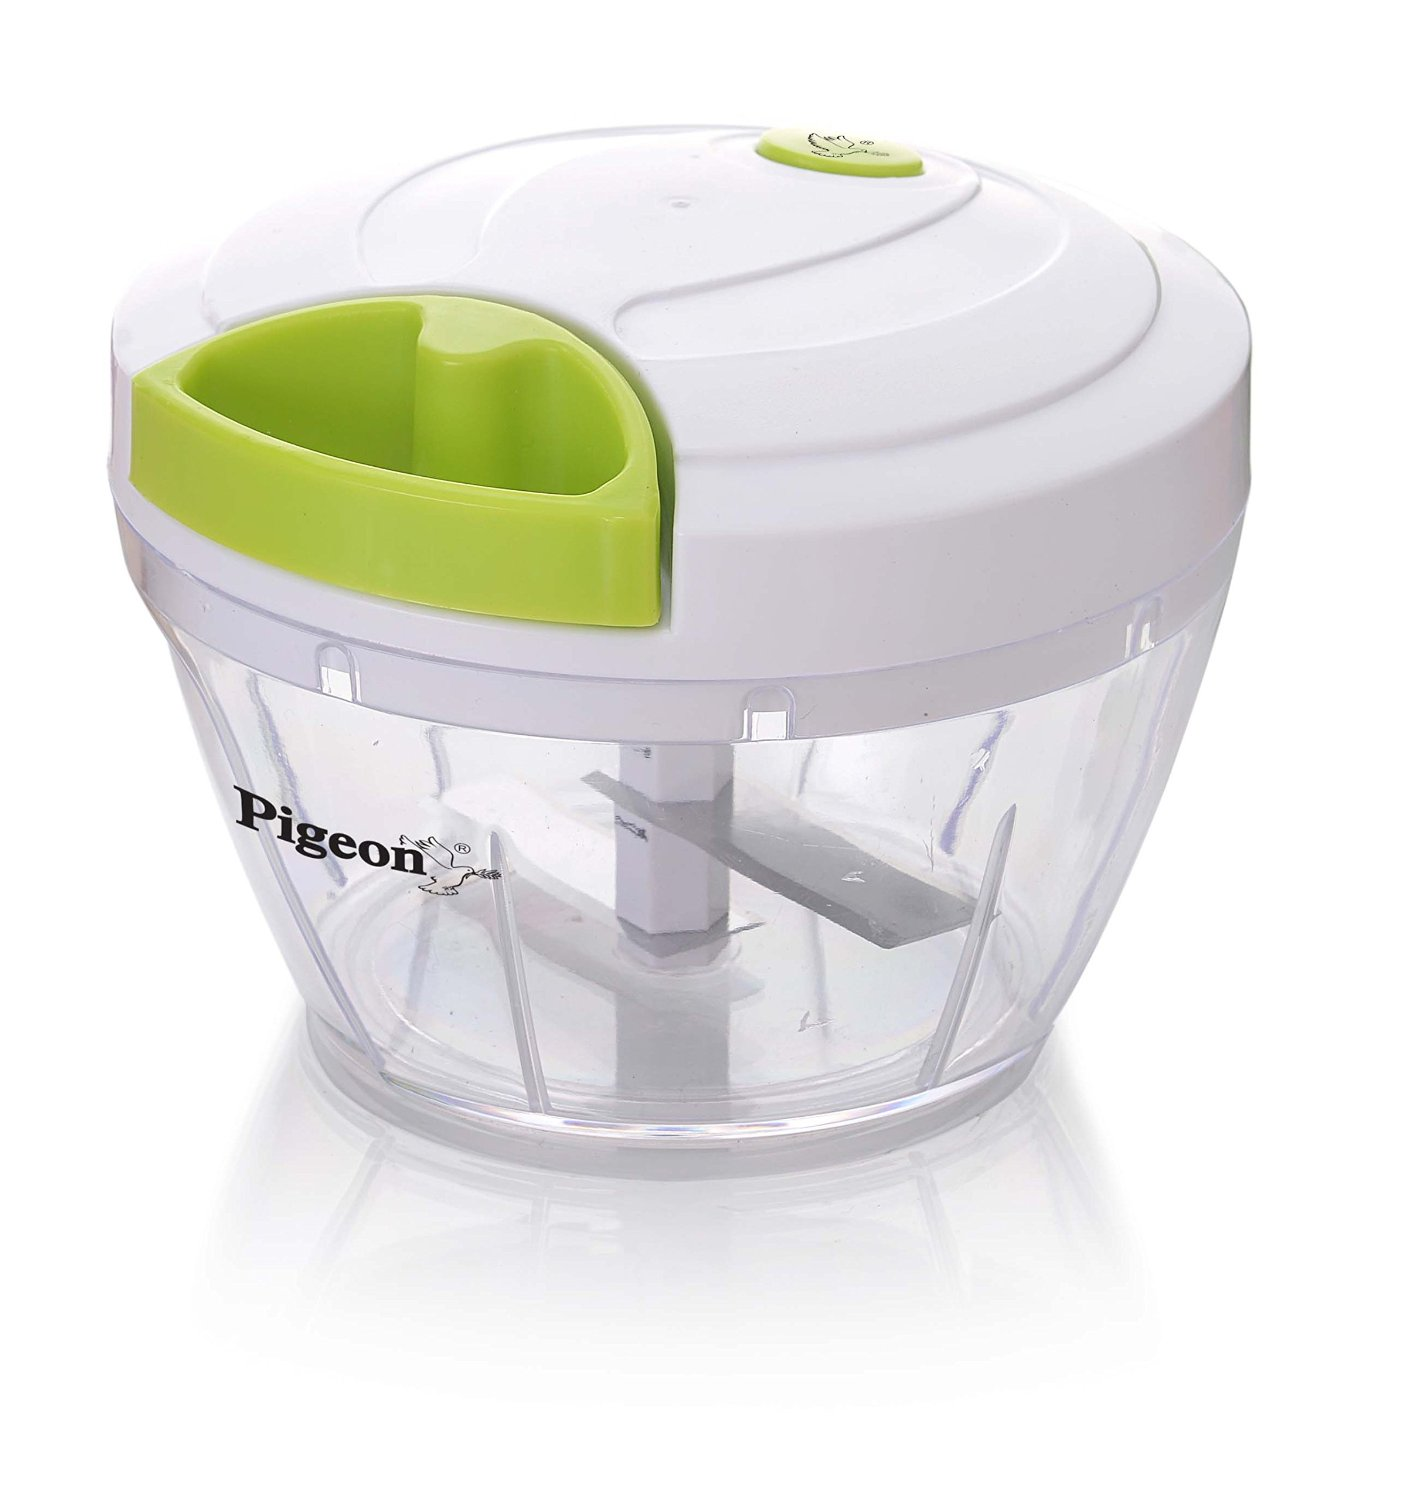 Pigeon Handy Mini Chopper for Rs 289 (42% off)